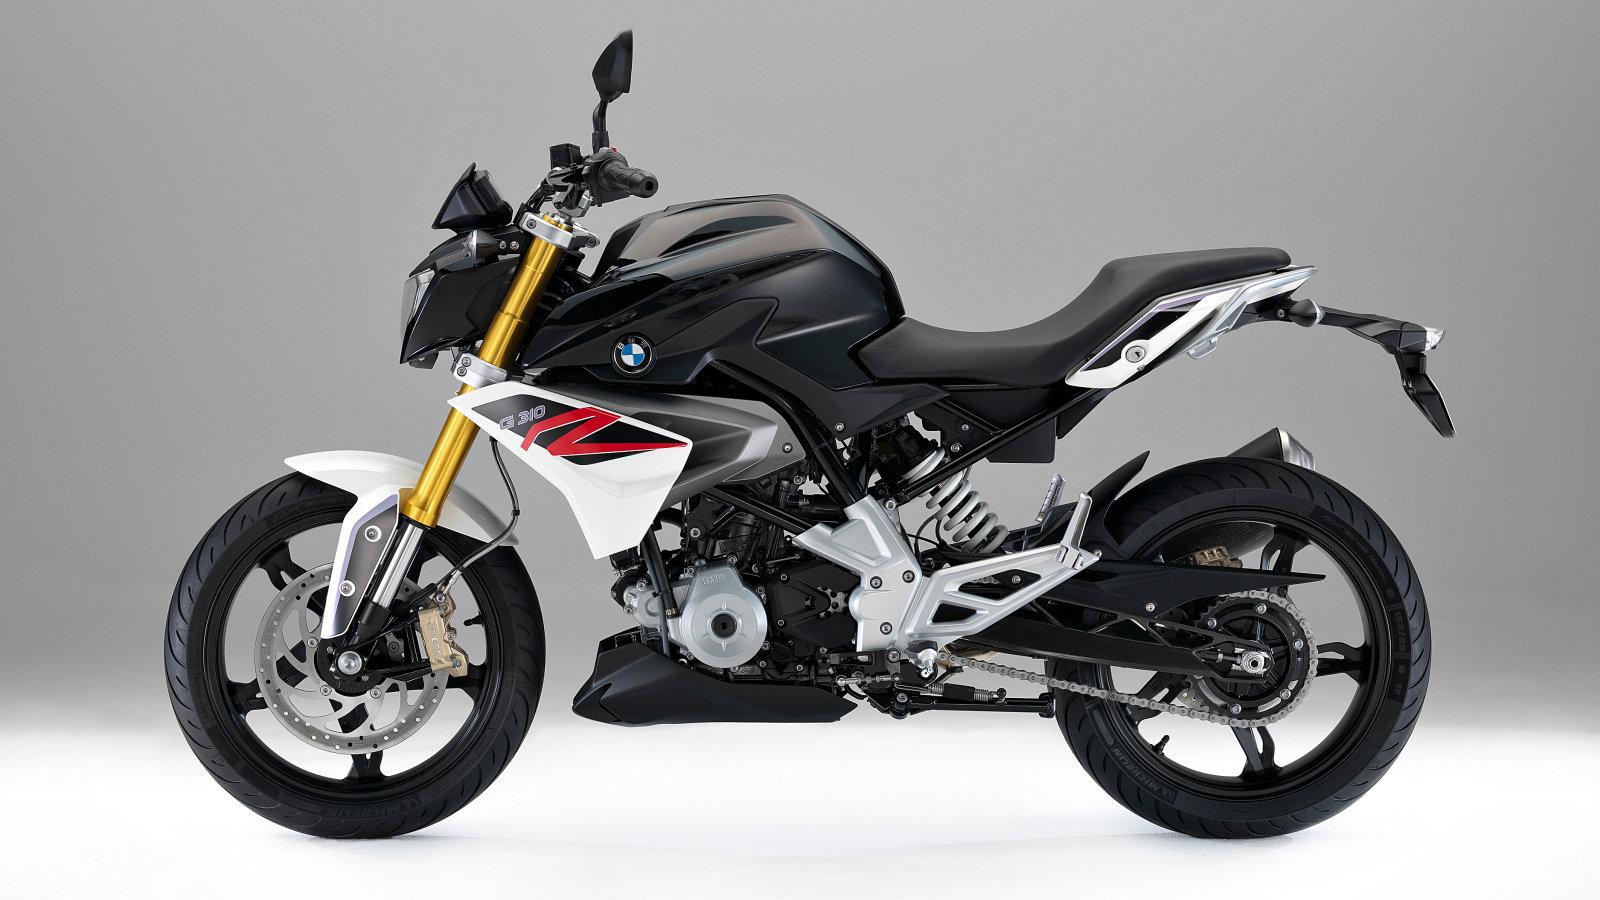 2016 bmw g 310 r picture 684735 motorcycle review top speed. Black Bedroom Furniture Sets. Home Design Ideas